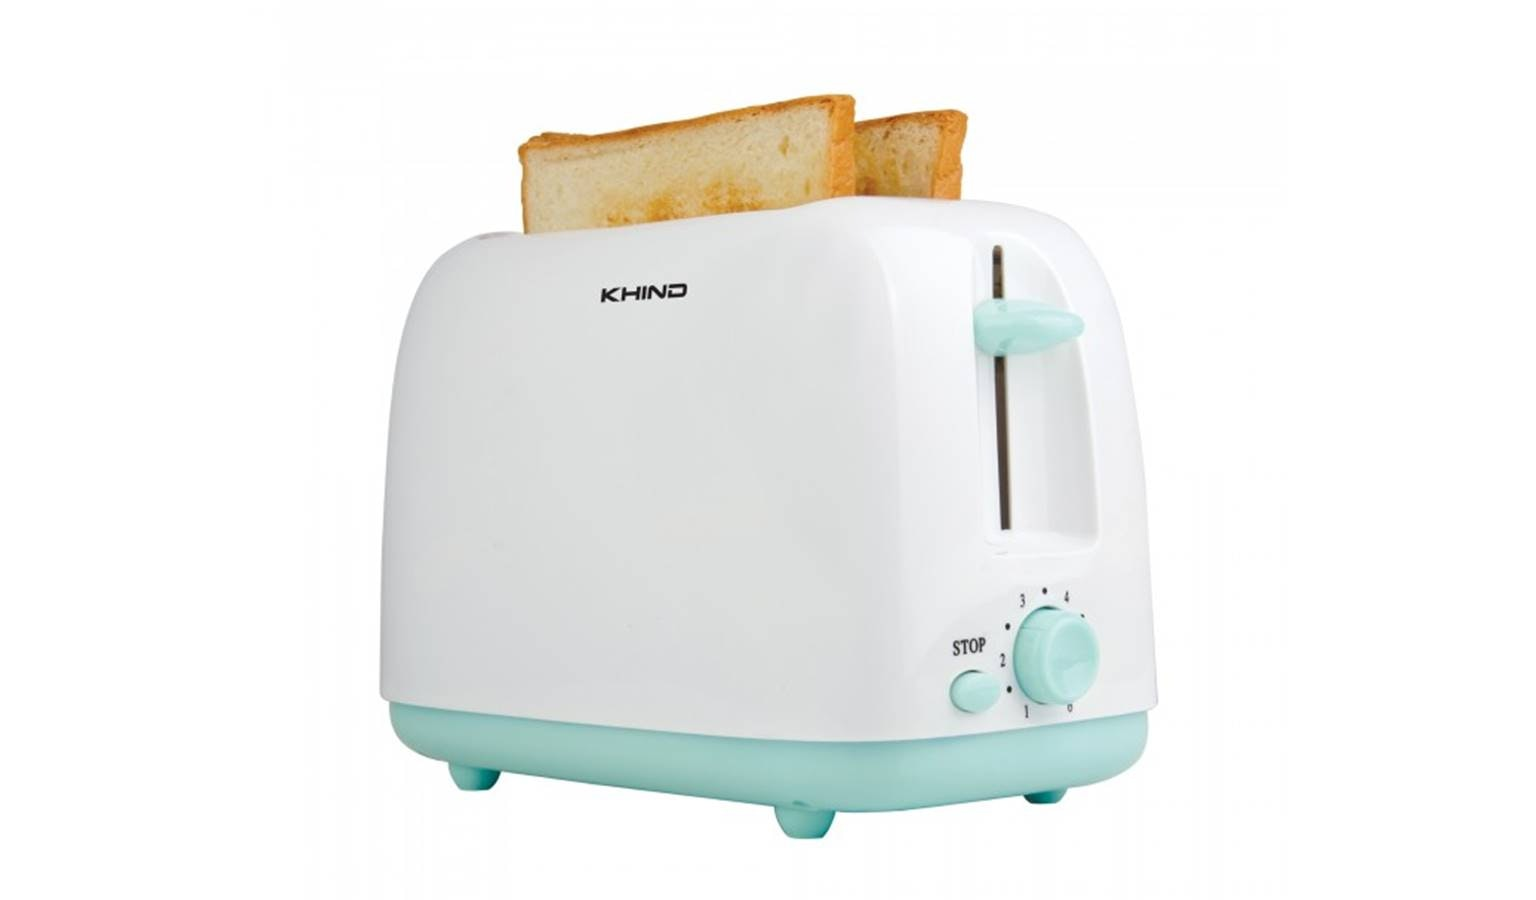 Khind Bt 808 2 Slice Bread Toaster With Anti Dust Cover Harvey Norman Malaysia